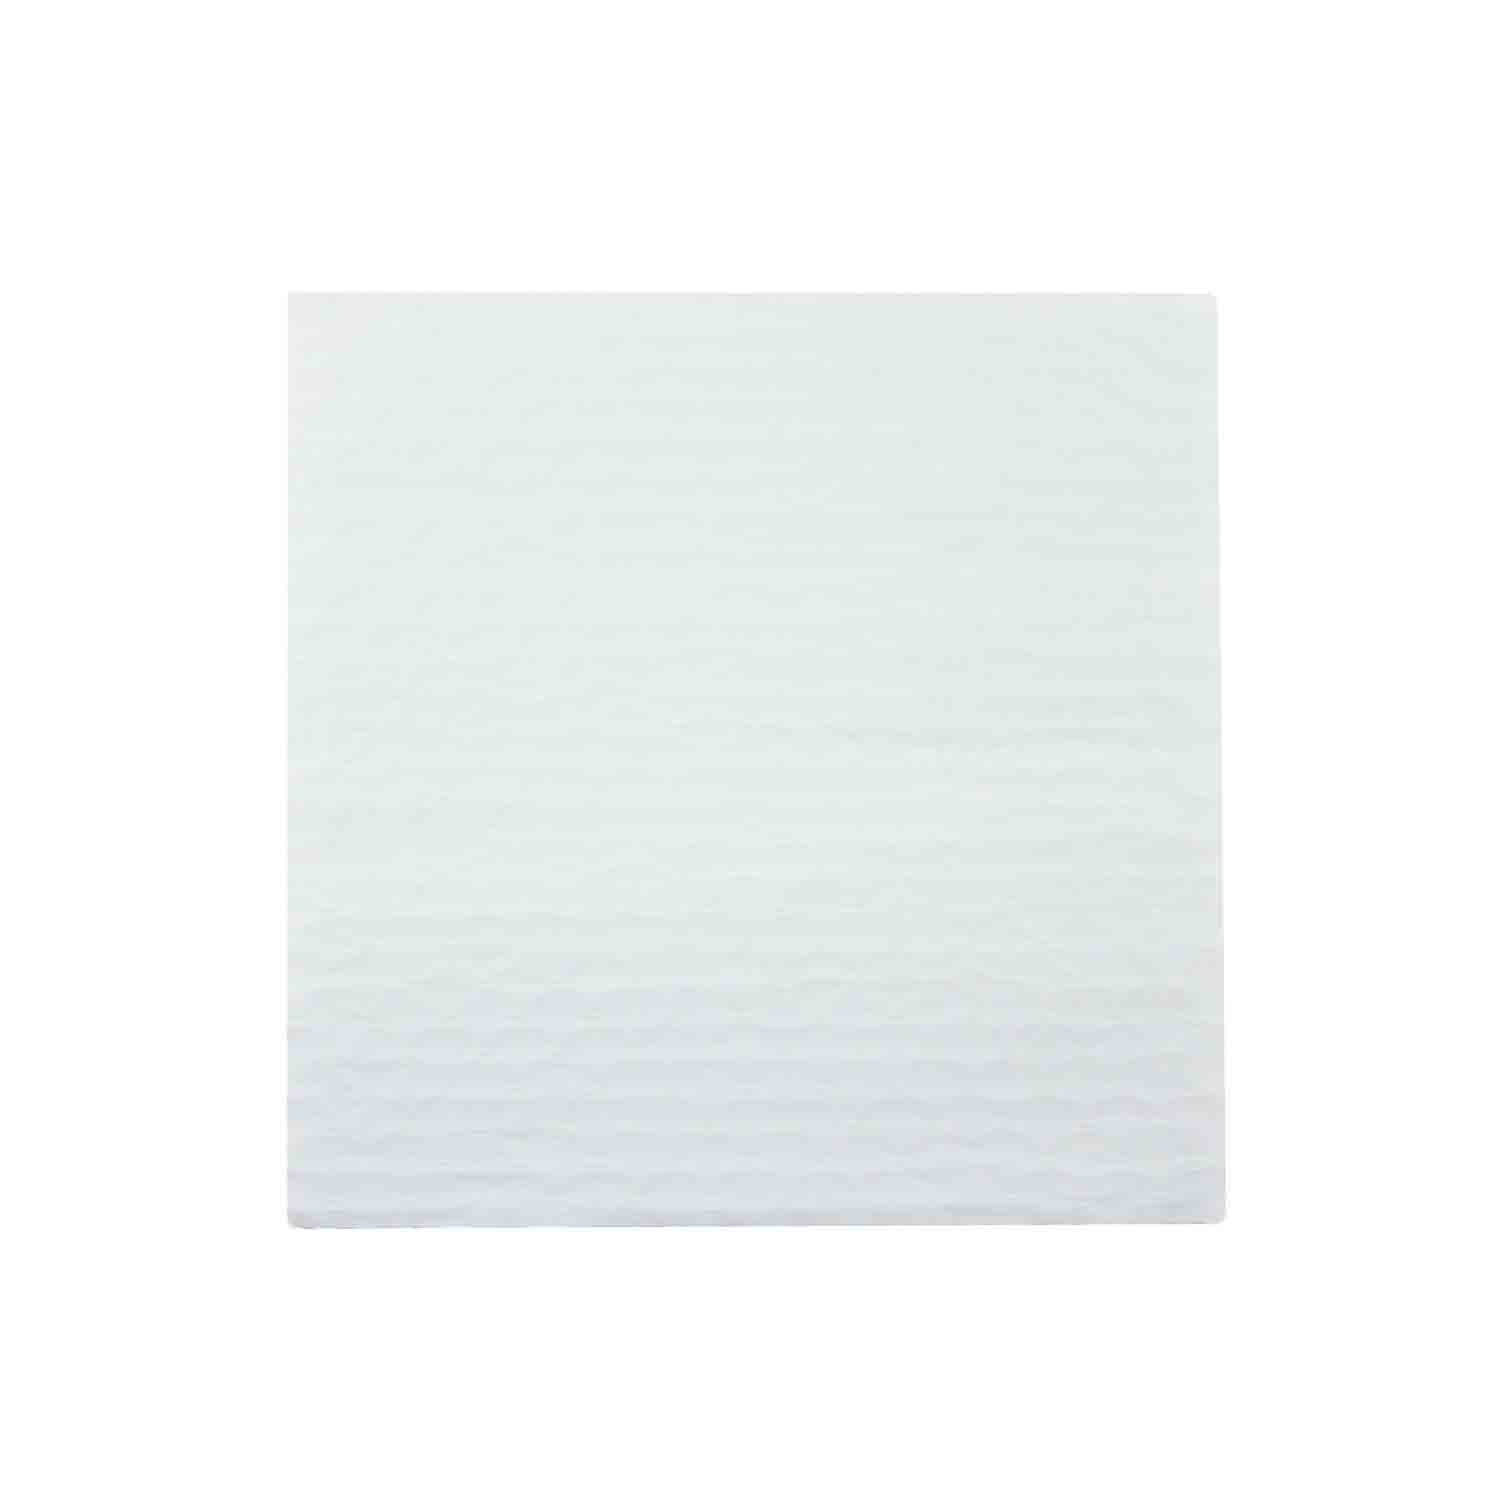 Square Candy Pad - 3 3/8